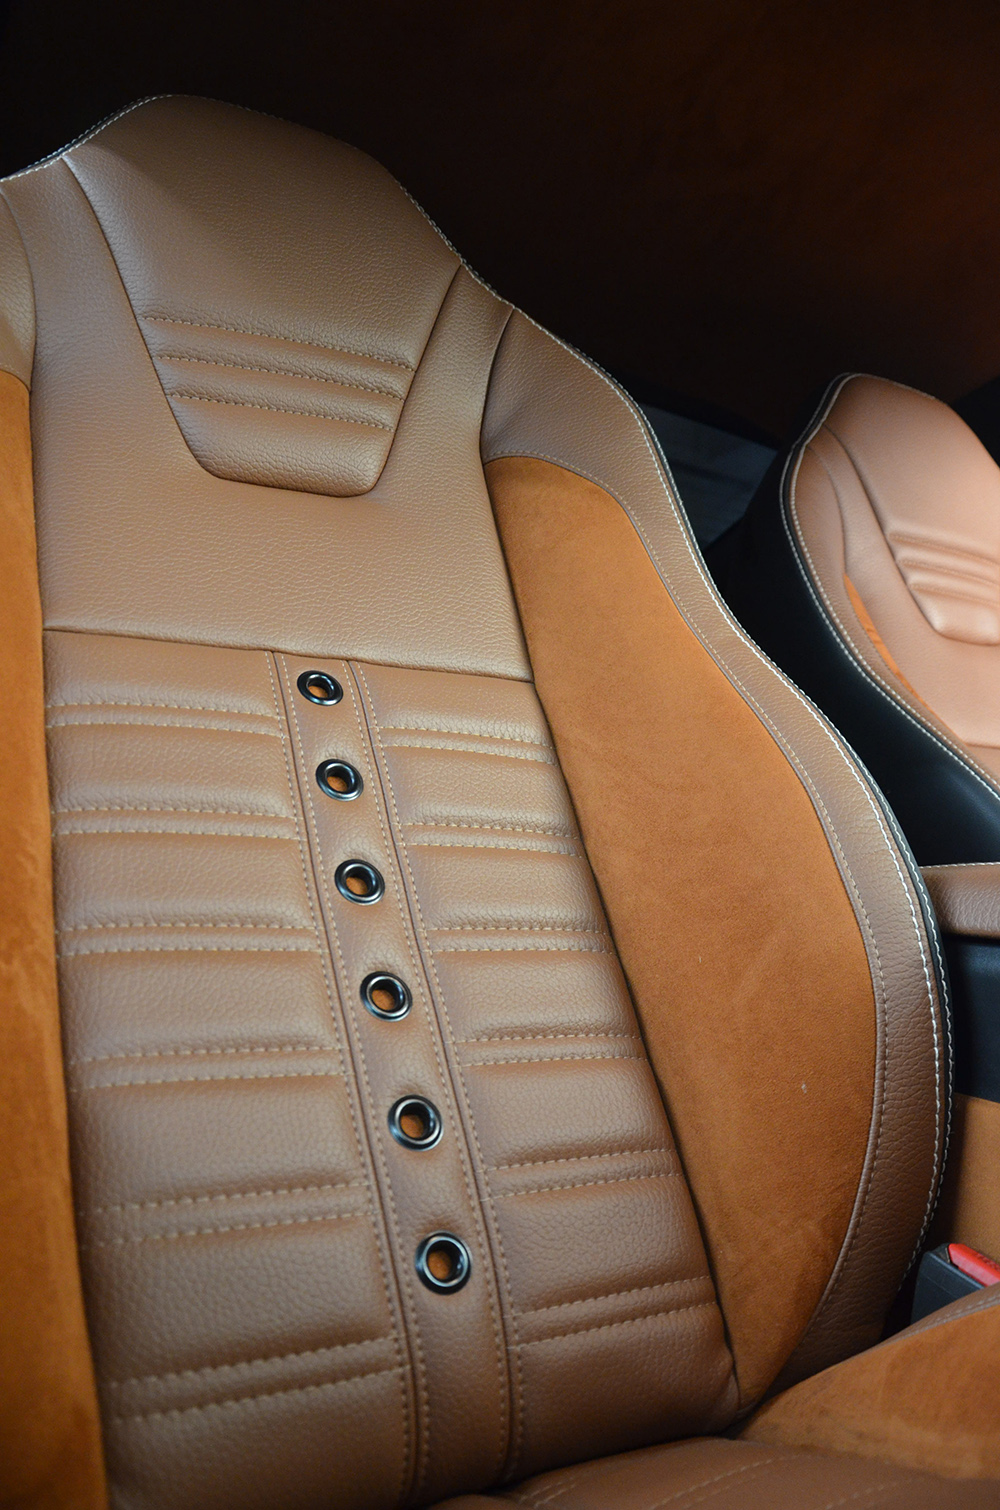 2003 Mustang featuring standard replacement SPORT-R500 upholstery in with black and gray vinyl and gray contrast stitching. Includes matching rear seat.